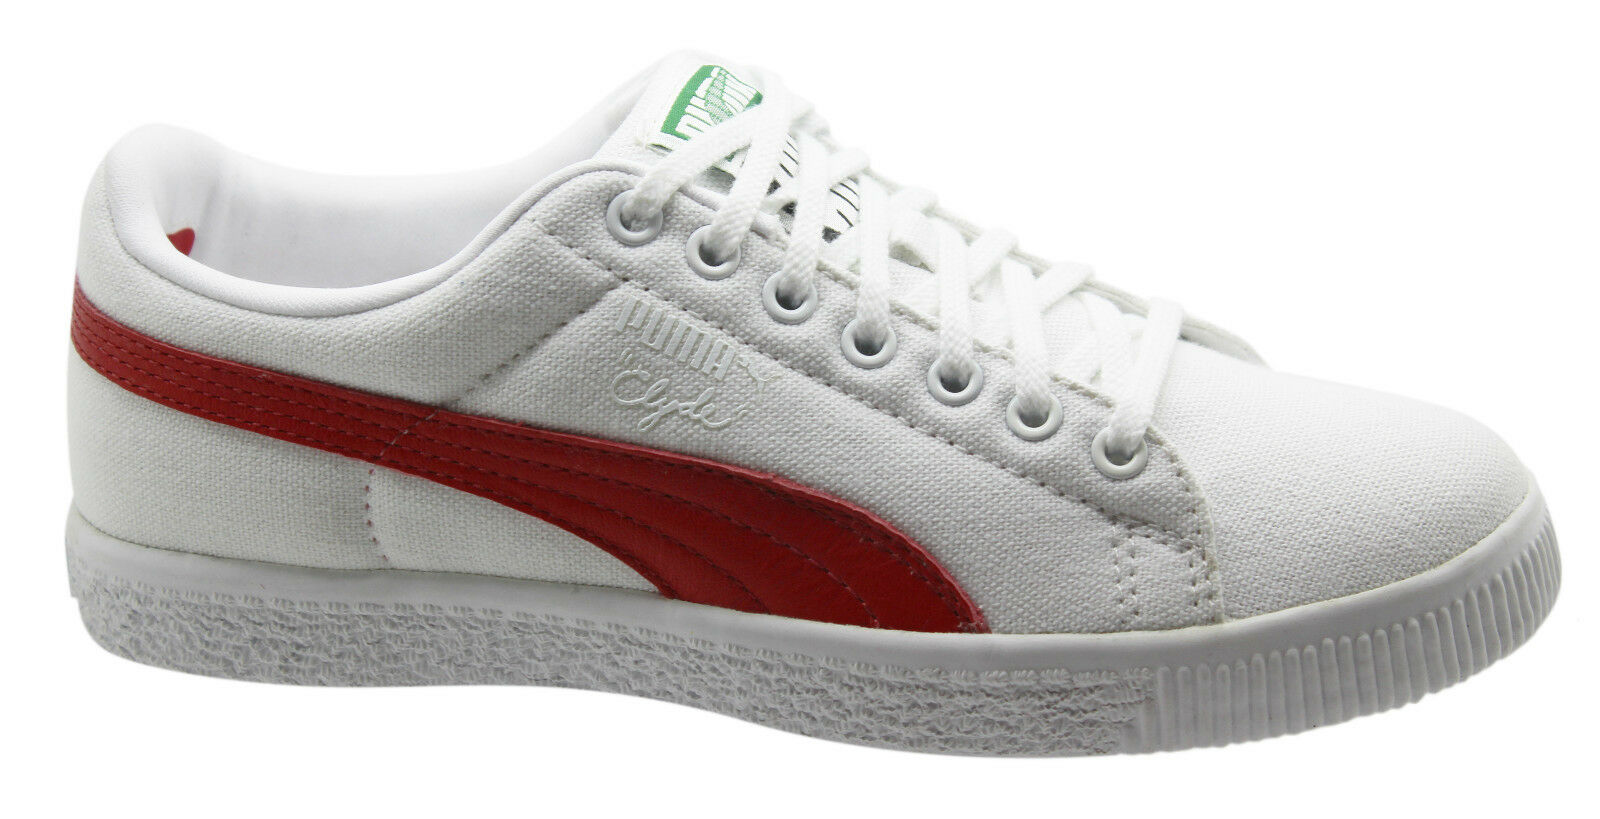 Puma Clyde X UNDEFEATED Canvas Trainers Hombre Trainers Canvas 352768 01 D1 d091ef